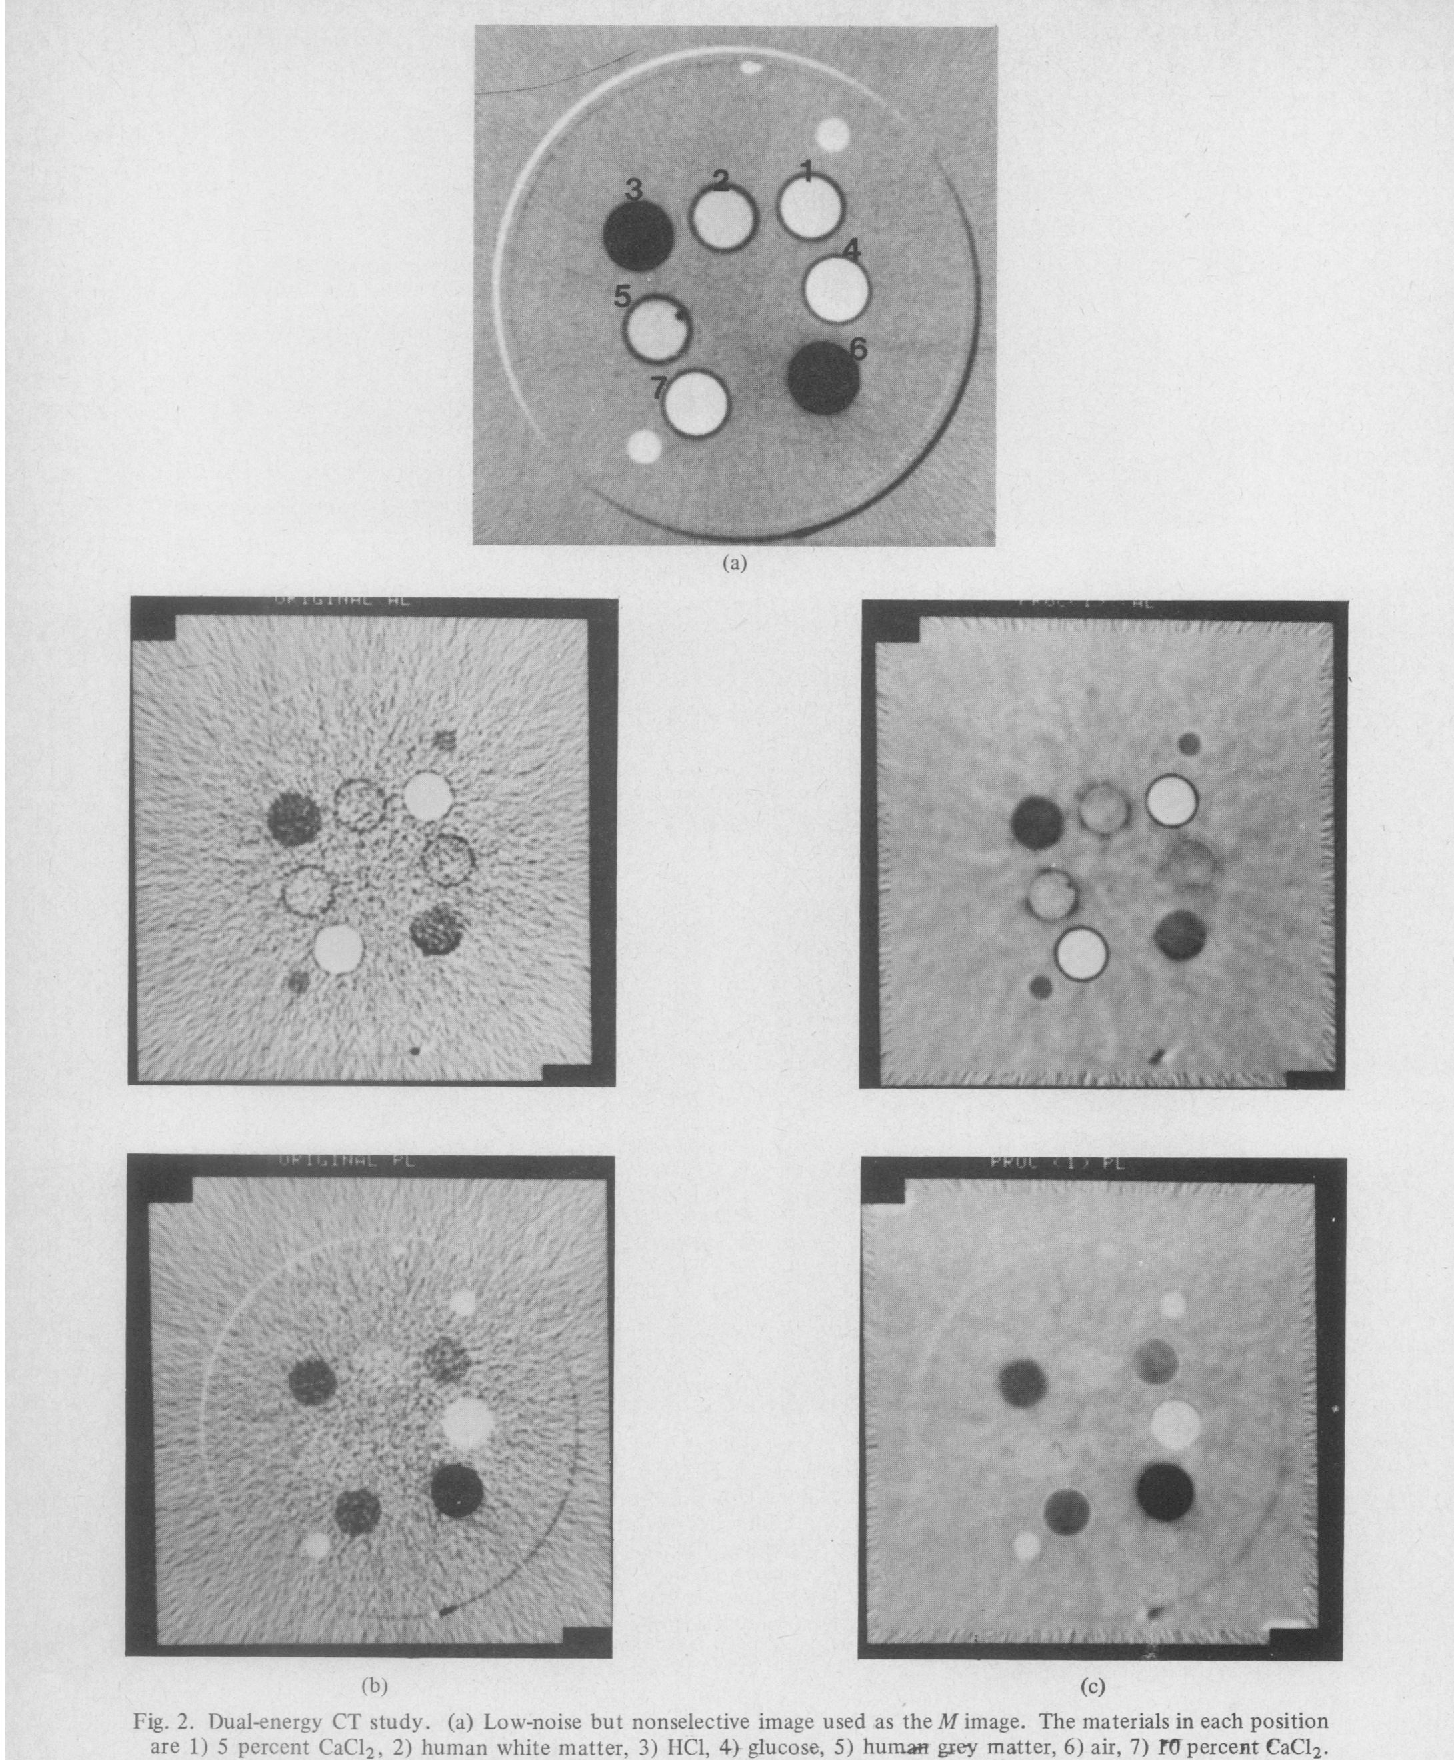 Fig. 2. Dual-energy CT study. (a) Low-noise but nonselective image used as theM image. The materials in each position are 1) 5 percent CaCI2, 2) human white matter, 3) HCI, 44 glucose, 5) human grey matter, 6) air, 7) mfJ percent CaCl2. (b) Aluminum (top) and plastic (bottom) component images from decomposition of the low and high energy scans. (c) Noise-reduced versions of Fig. 2(b). The improvement in SNR is about a factor of 4.